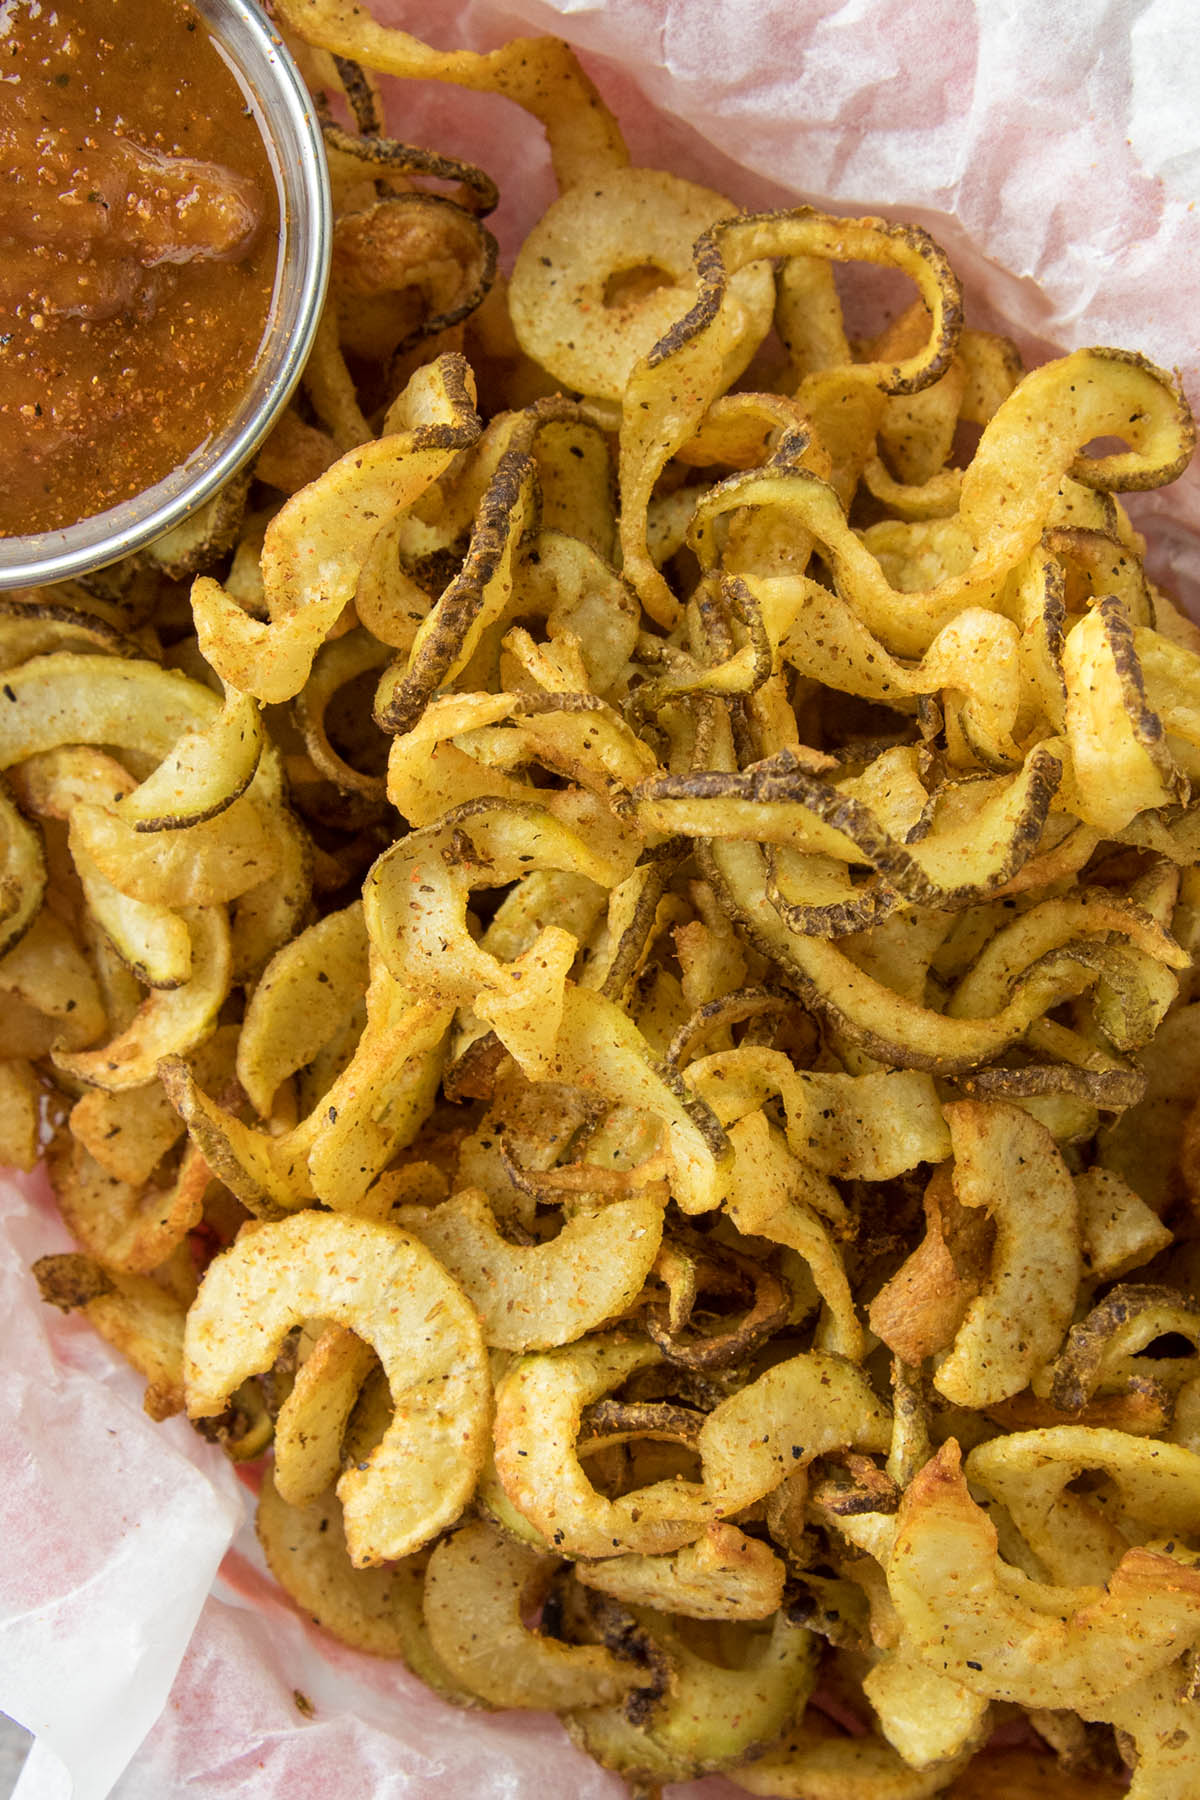 Homemade Air Fryer Cajun Curly French Fries - Recipe